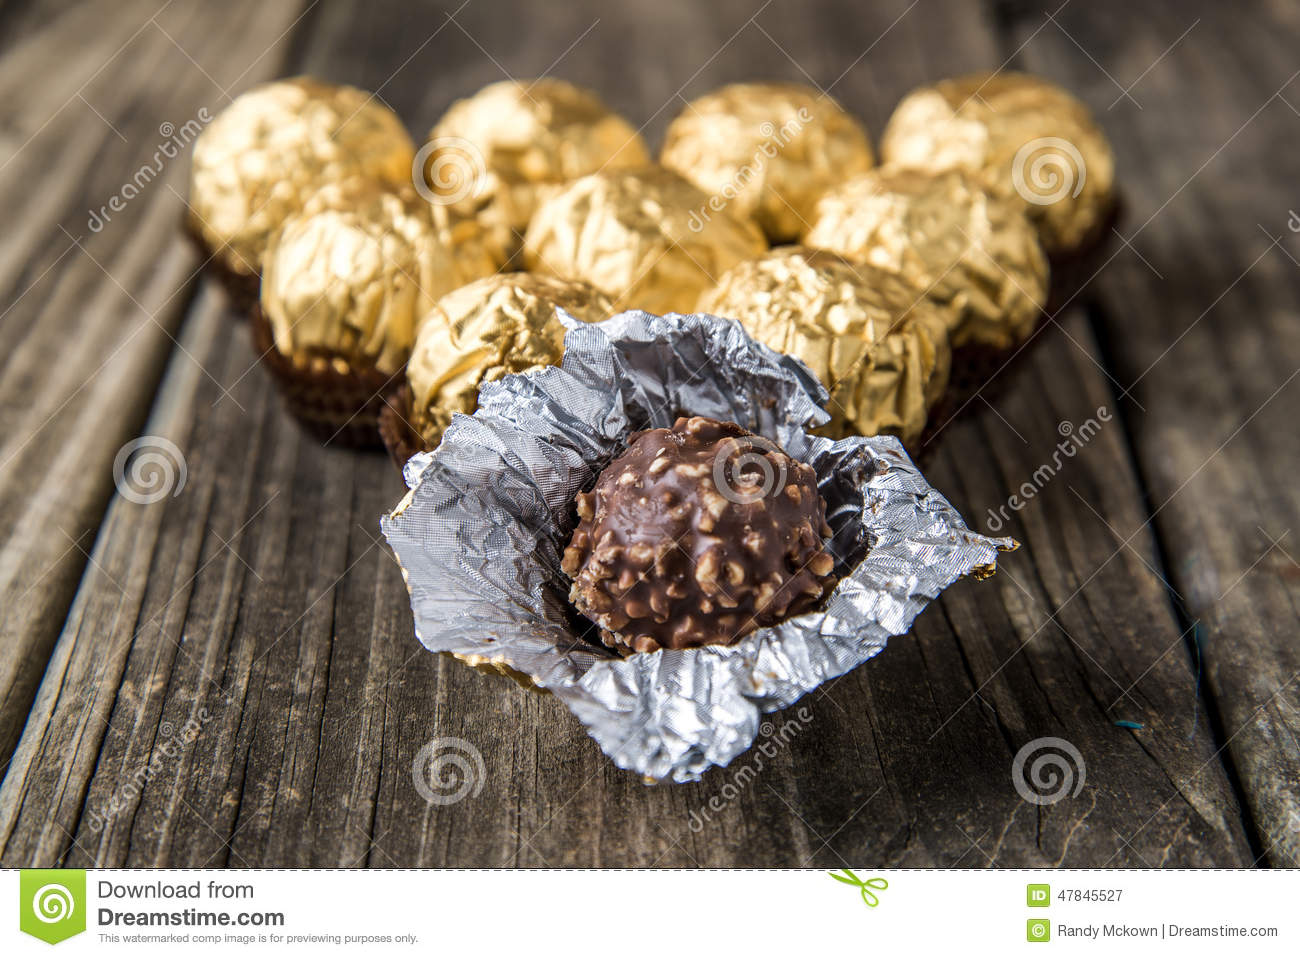 Ferrero Rocher Stock Symbol Image Collections Definition Of Symbolism T24 Coklat 24pcs Chocolate Hazelnut Candy In Gold Foil